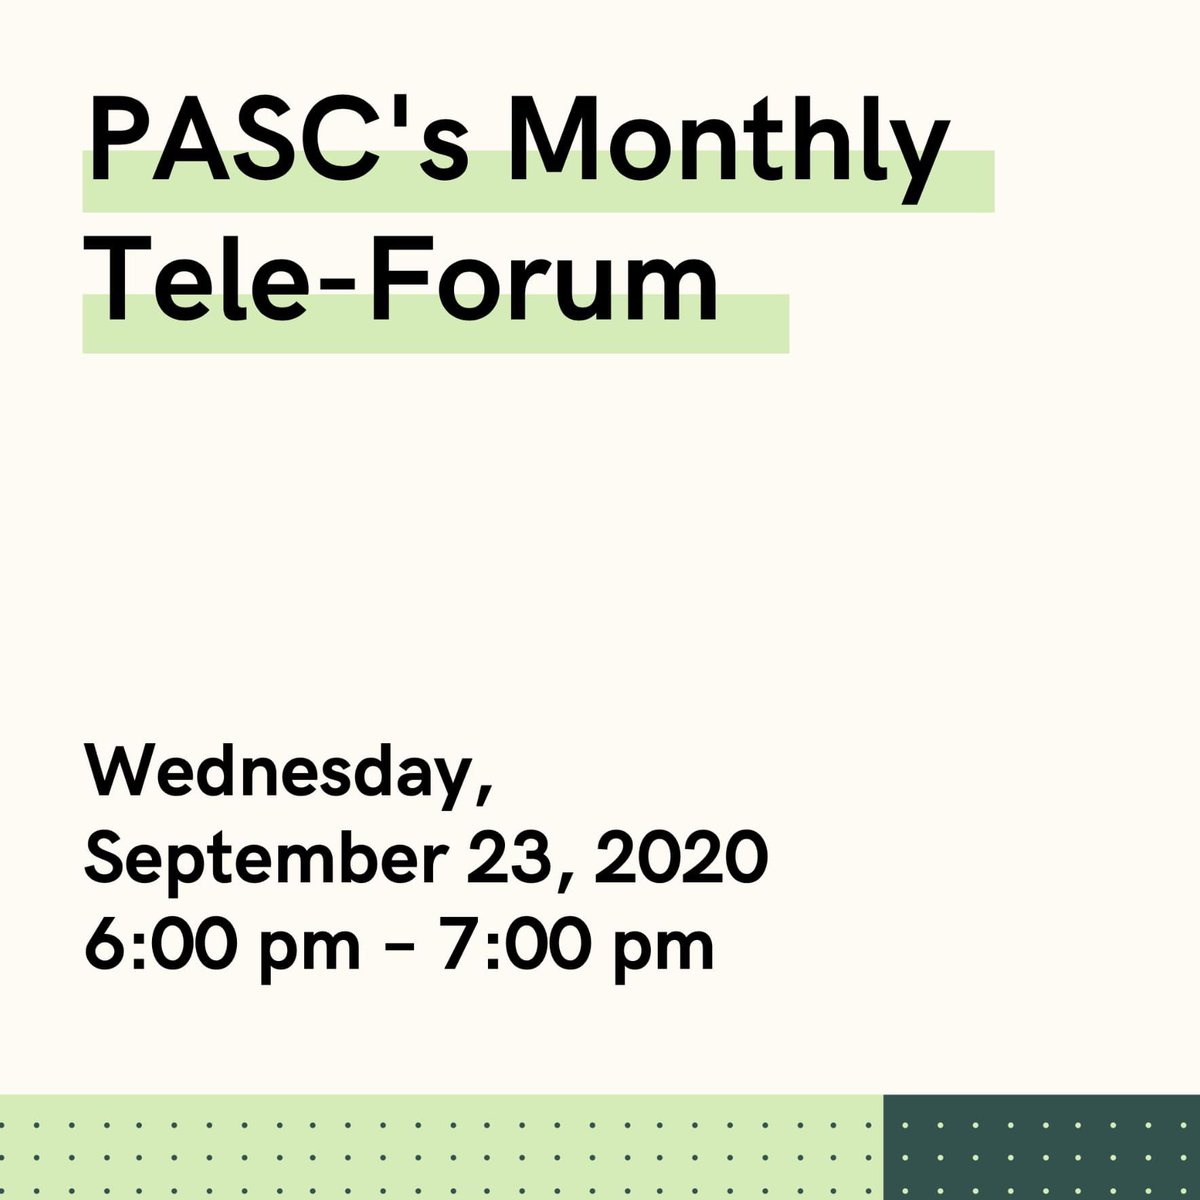 Join us for a discussion with Dr Jeffrey Gunzenhouser from the LA County Department of Public Health for a COVID-19 update.  Join by: Dial 877-229-8493  use i.d. code 111563 https://t.co/Nqr5eQCJrI  #pasc #pascla #ihss #consumers #providers #losangeles #LACounty https://t.co/XuEhwS2Zvw